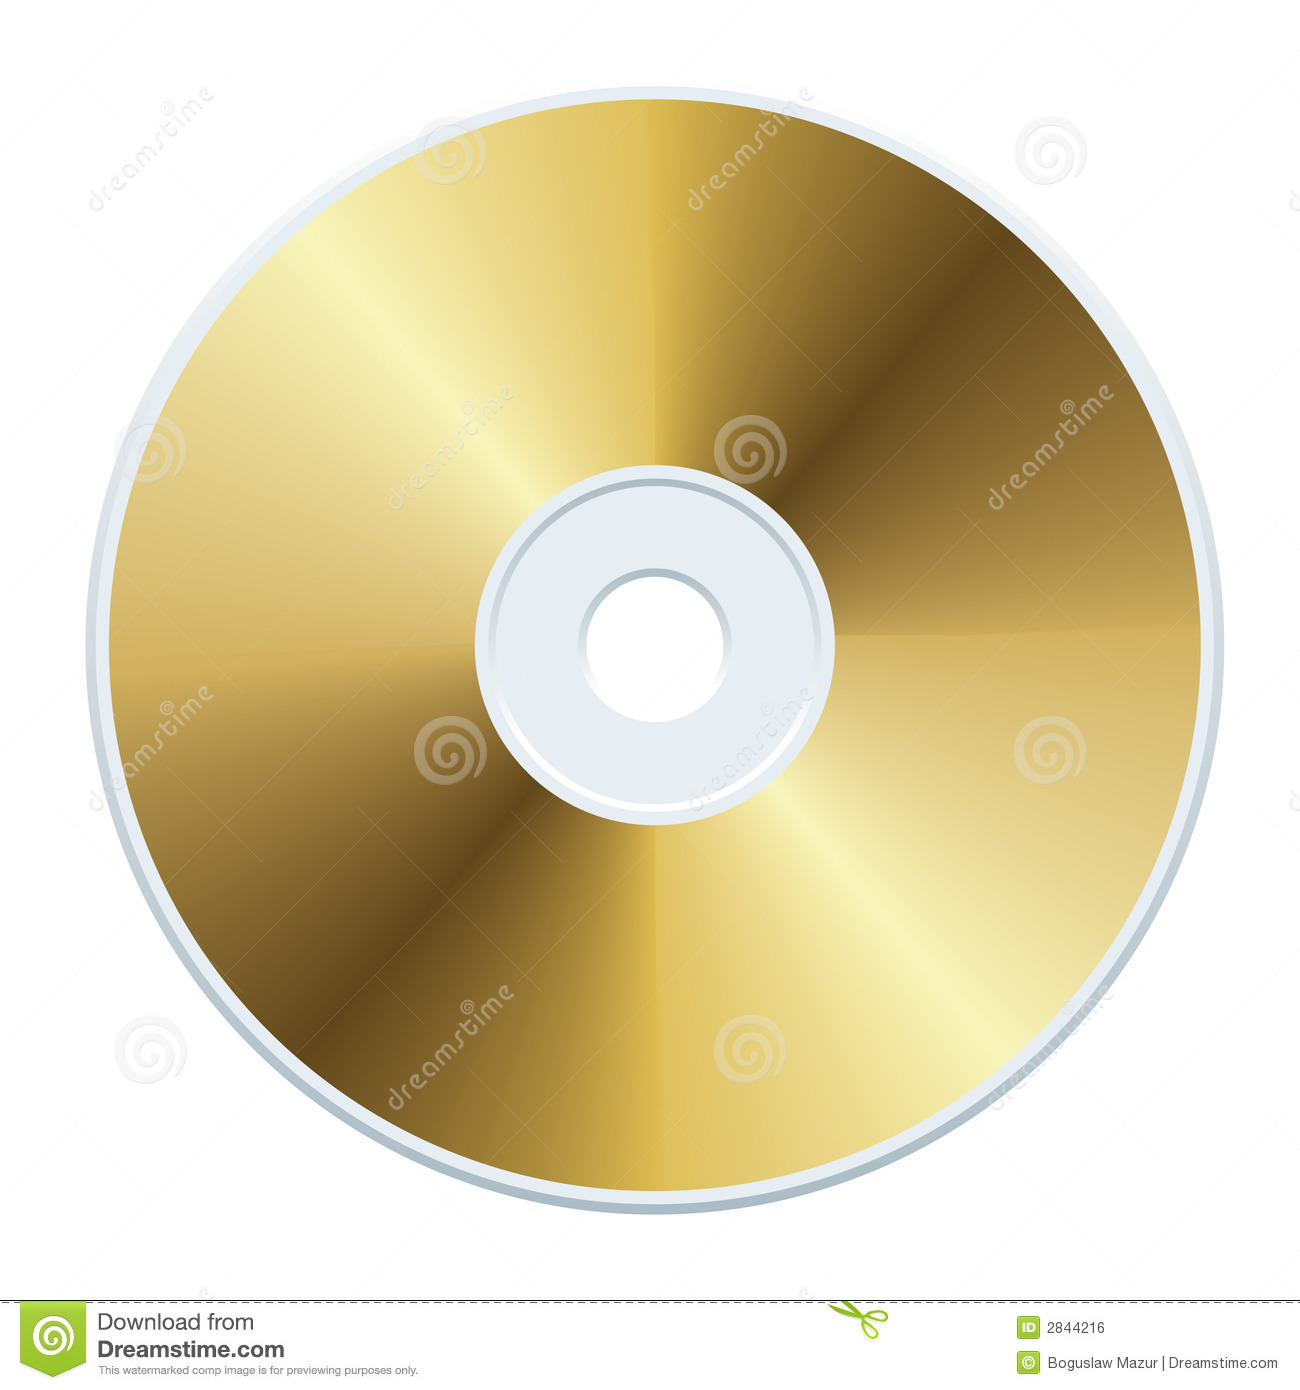 Gold Cd Royalty Free Stock Image Image 2844216